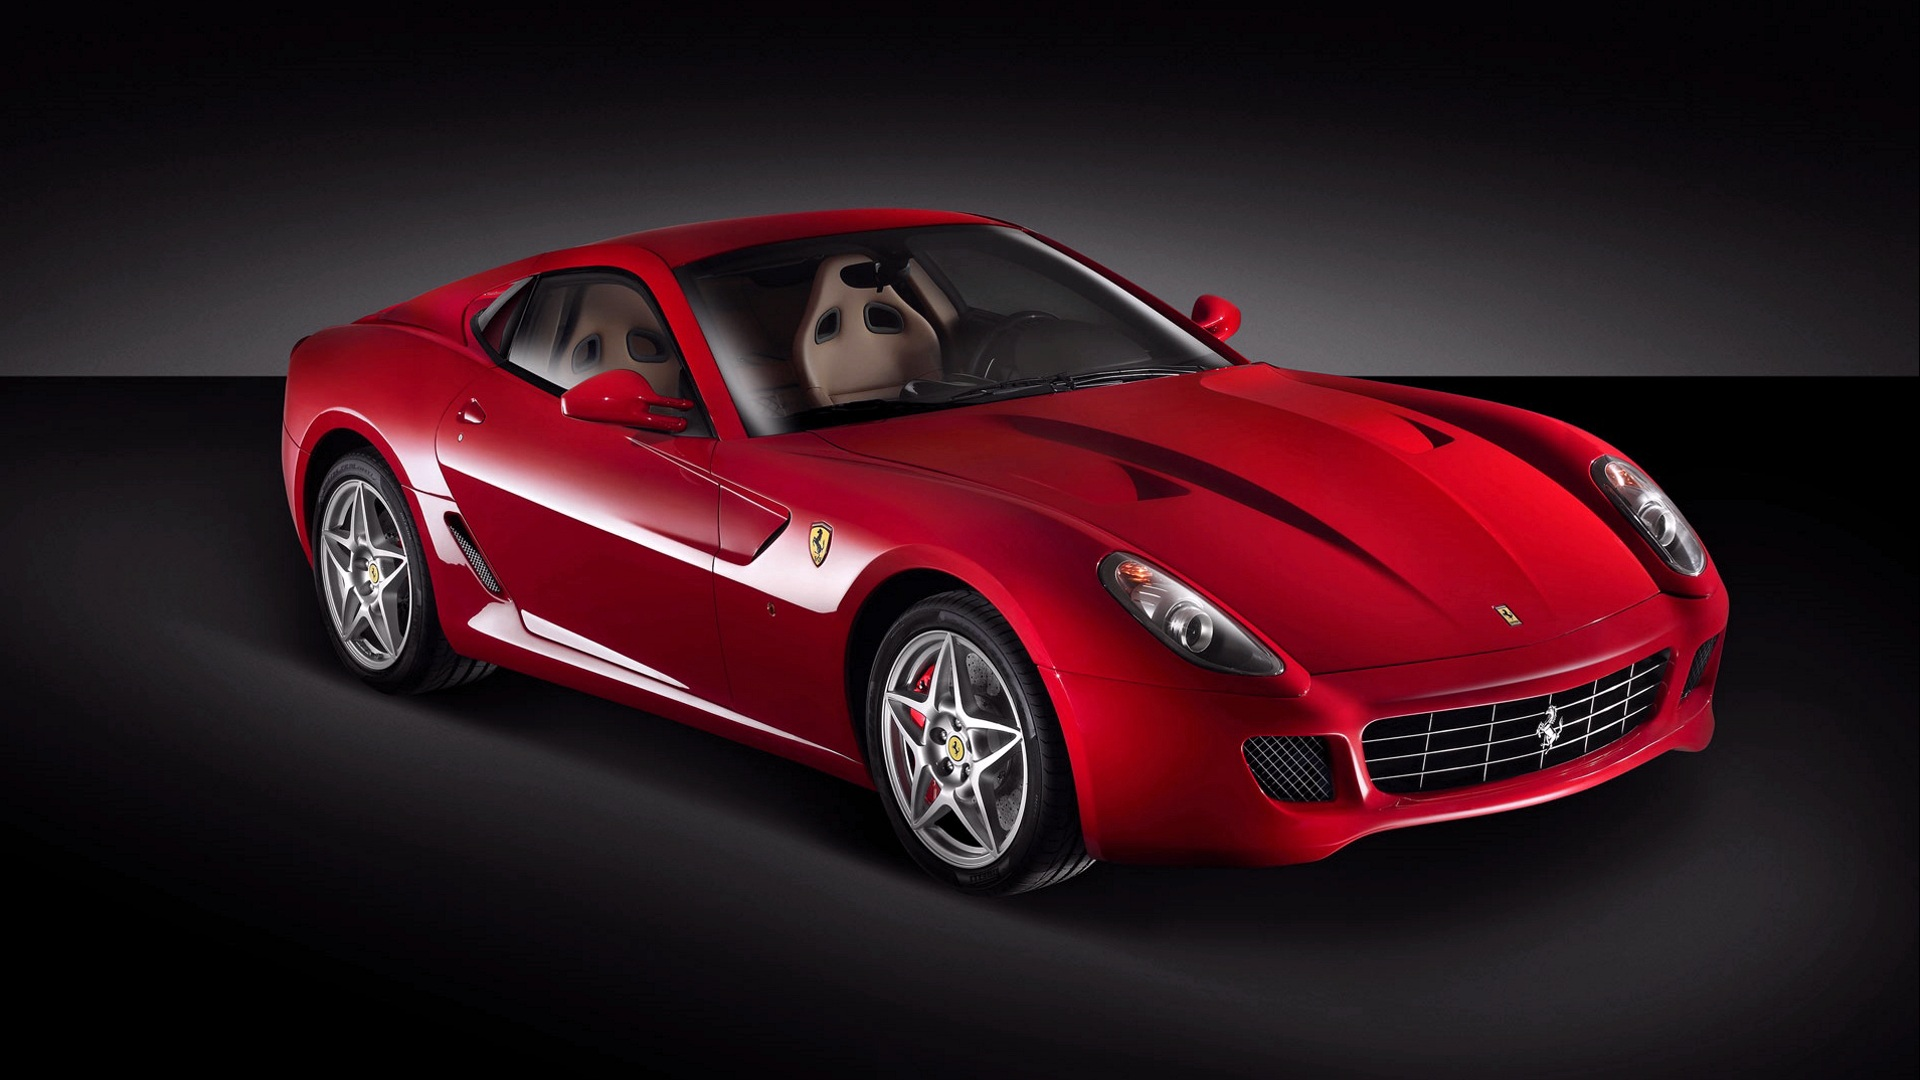 Ferrari Cars Wallpapers